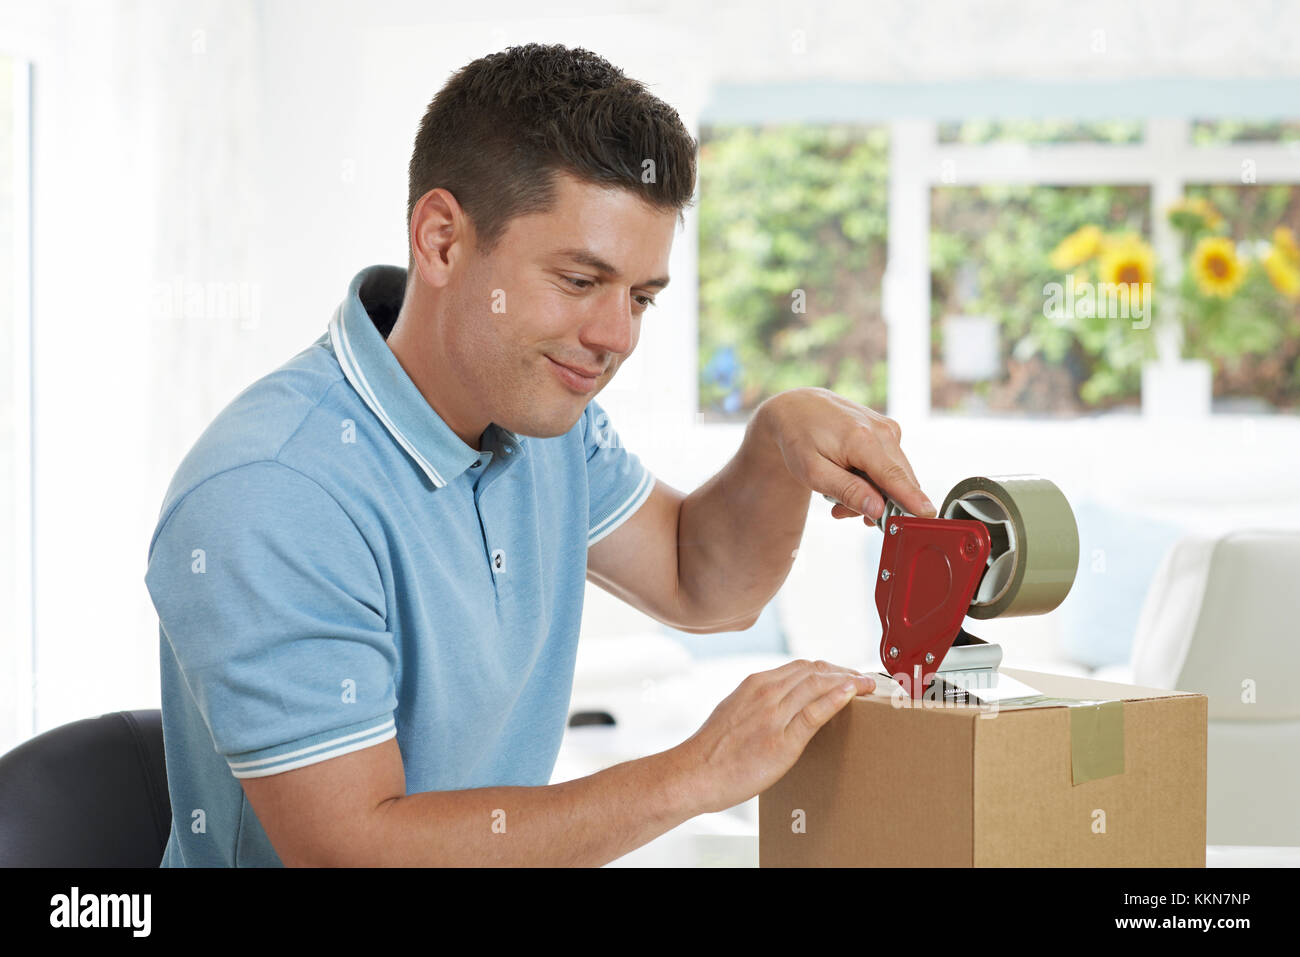 Man At Home Sealing Box For Dispatch - Stock Image